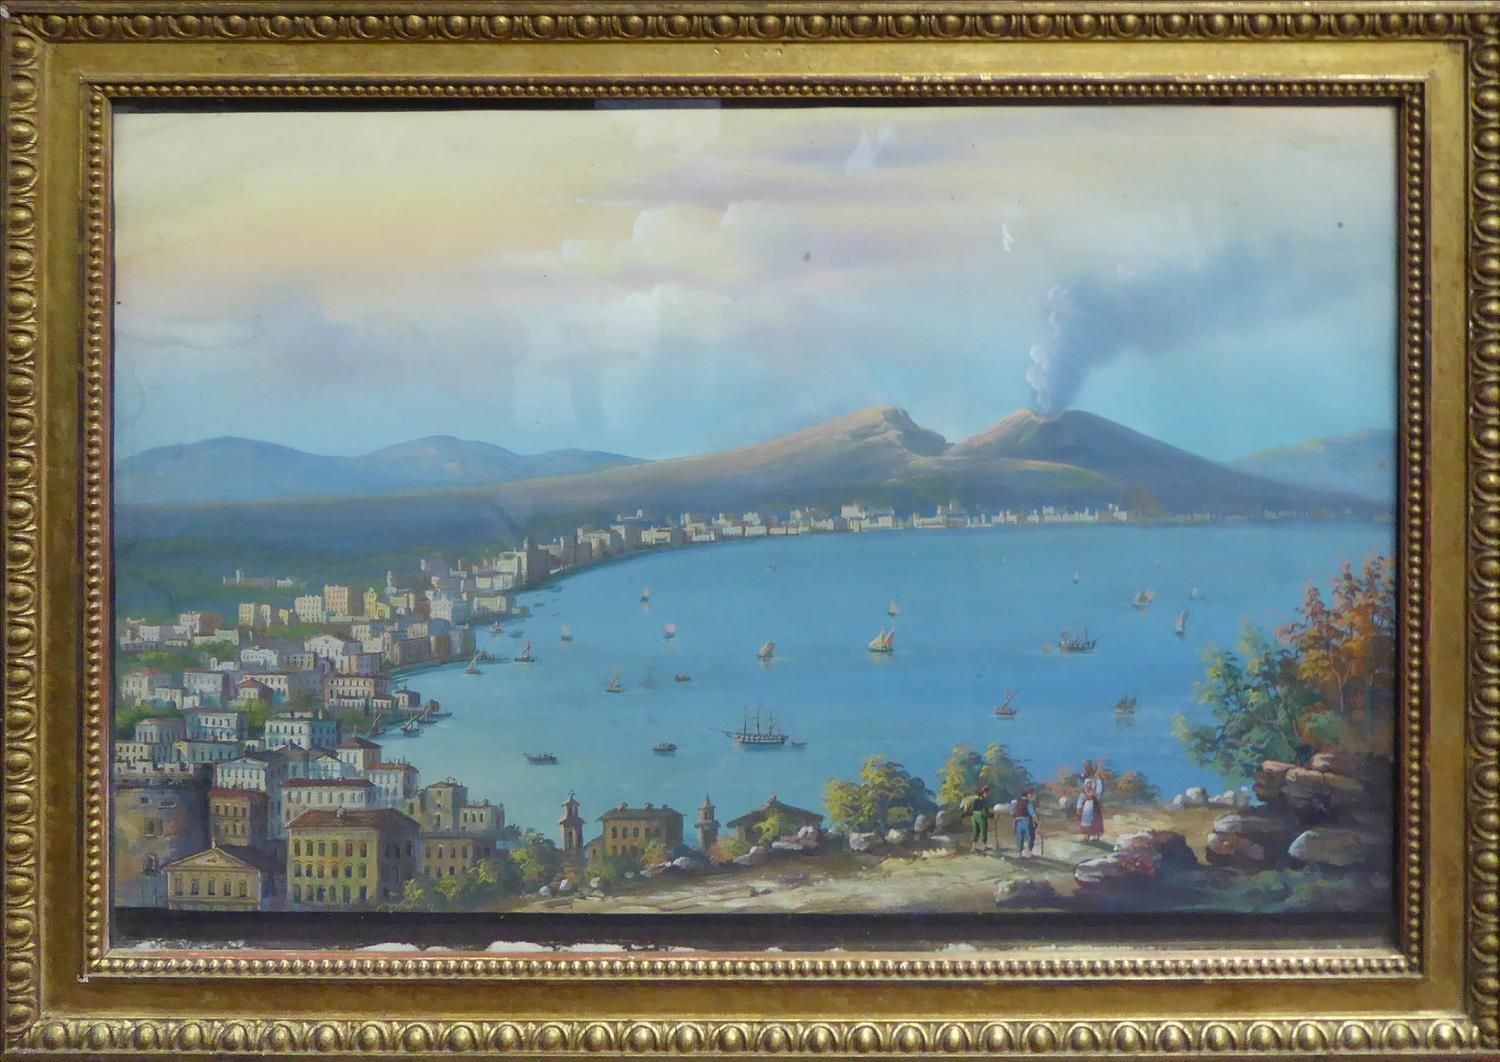 19th CENTURY ITALIAN SCHOOL 'The Bay of Naples' and 'Seafront Promenade Naples', a pair of gouaches, - Image 2 of 2